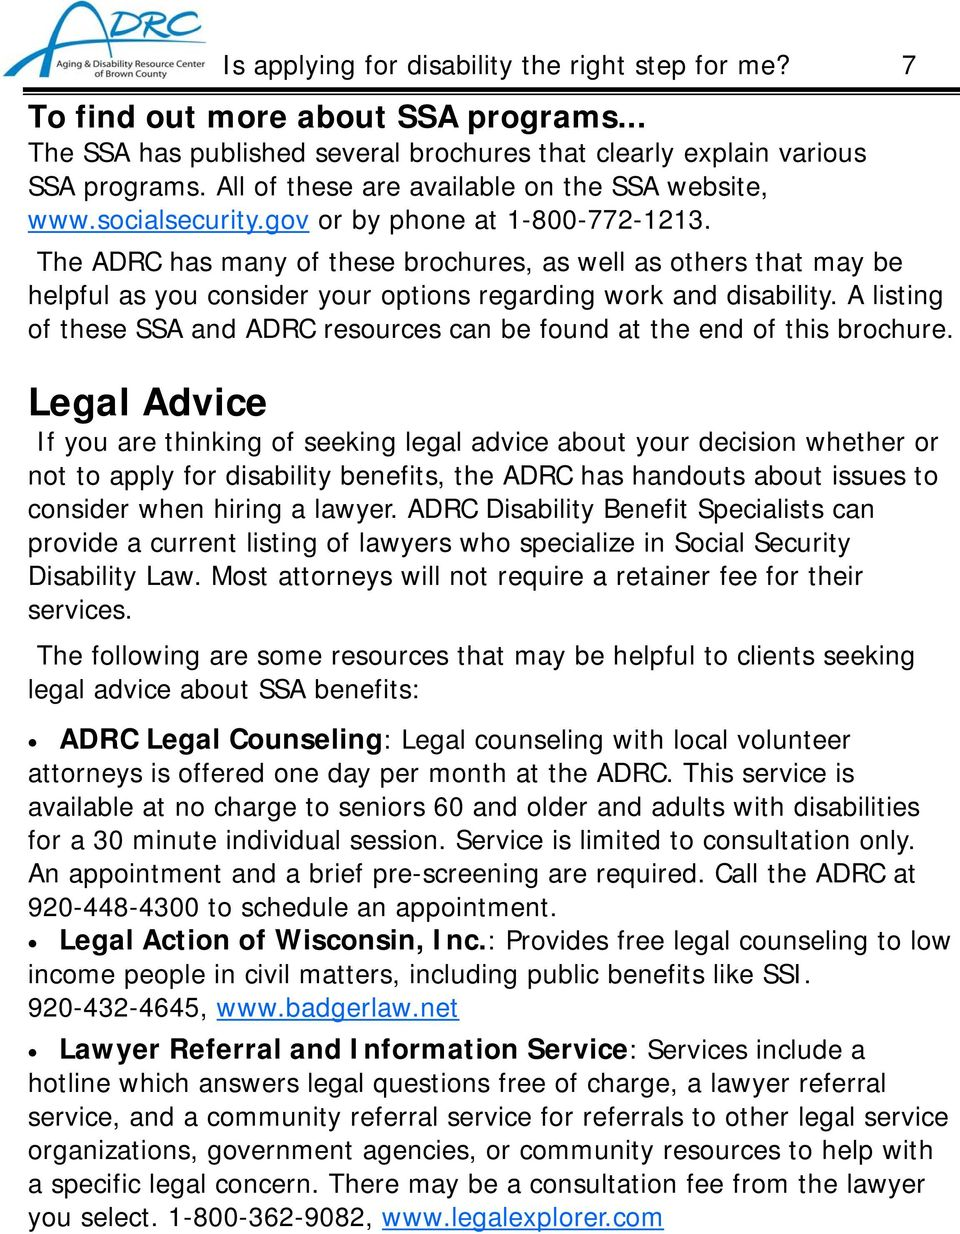 The ADRC has many of these brochures, as well as others that may be helpful as you consider your options regarding work and disability.